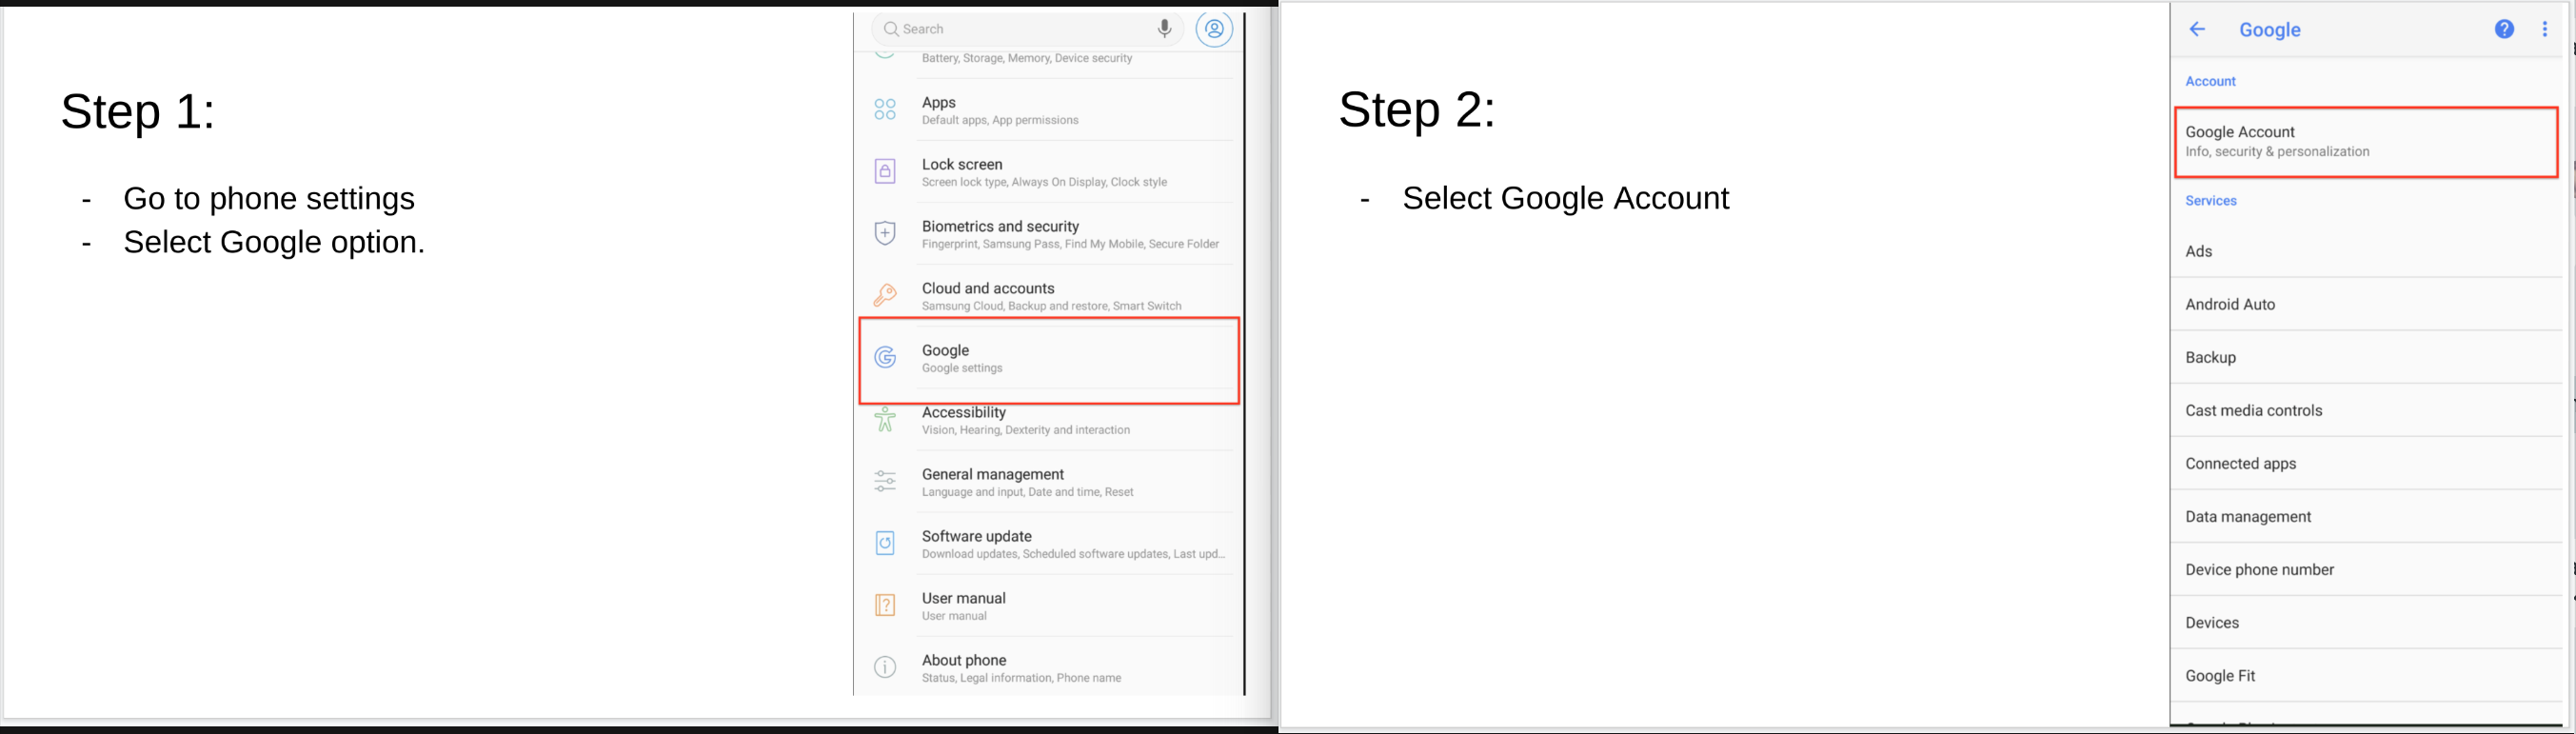 Tips on how to recover your Google account that were still